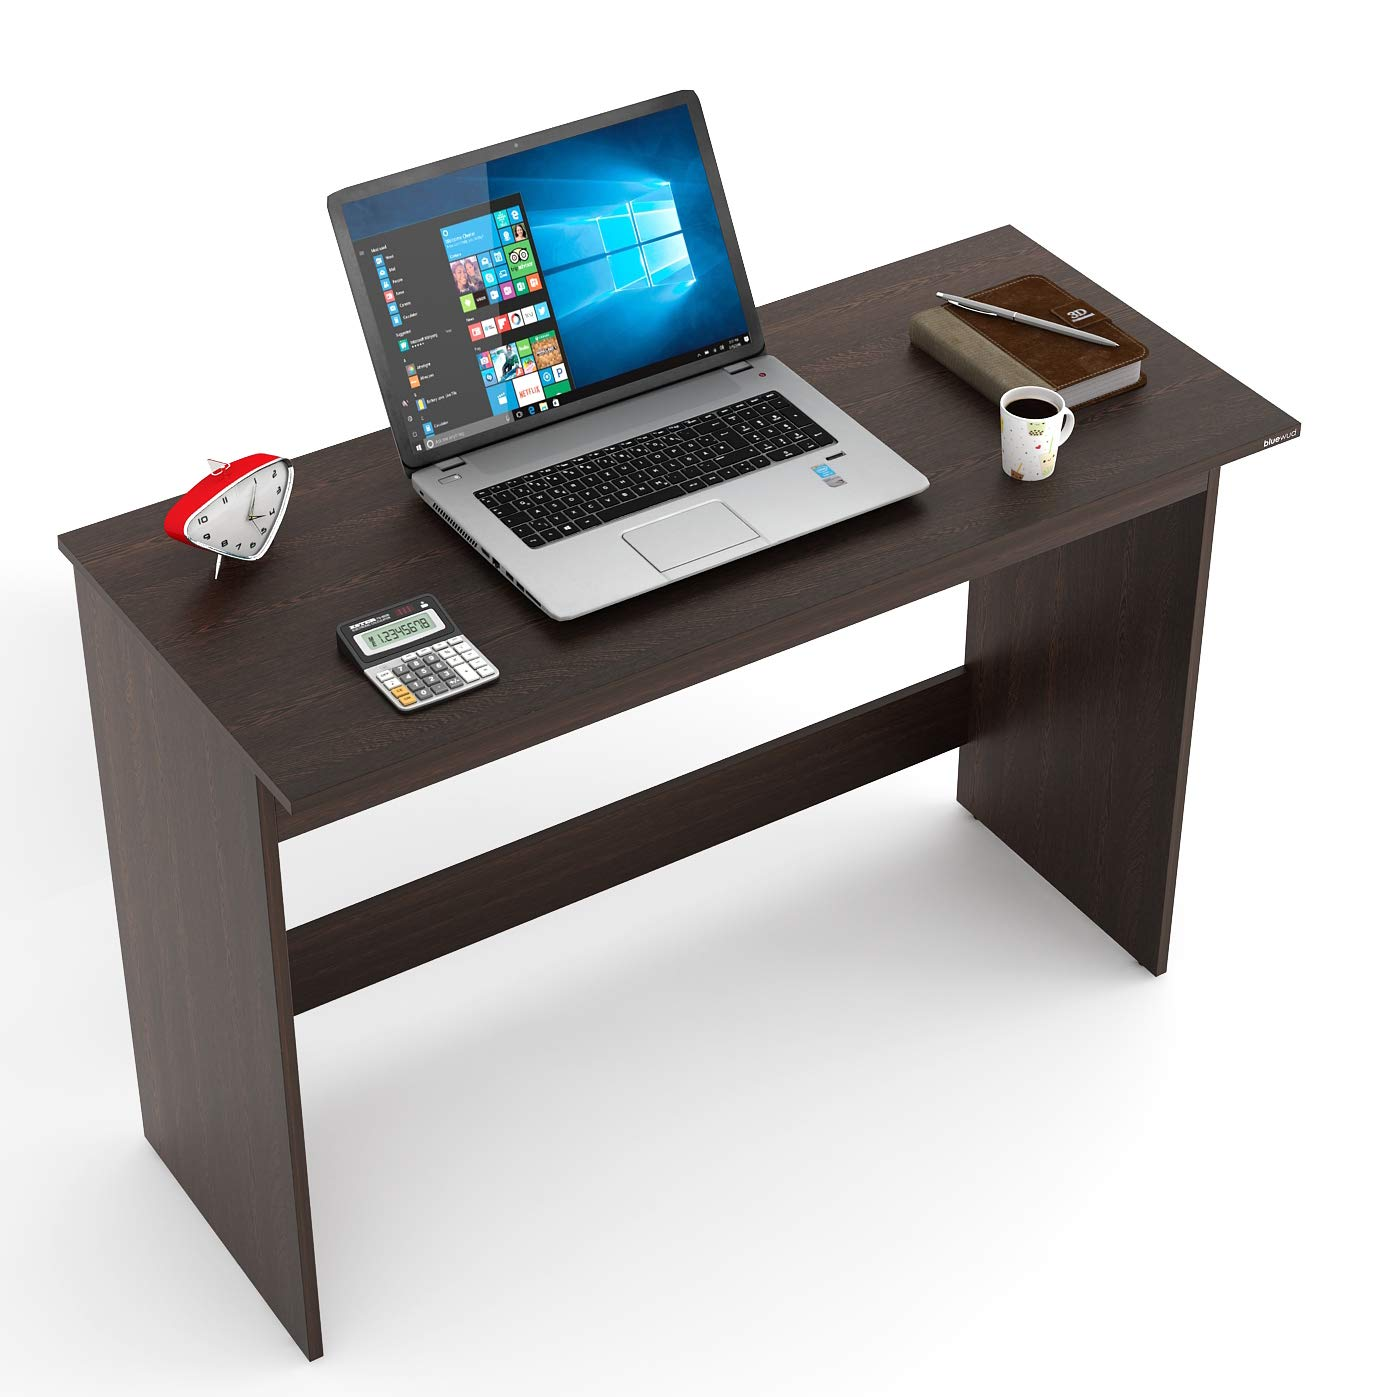 craft atoz  Wood Study Table, Laptop, Computer Table Desk for Home & Office (Large - Wenge)